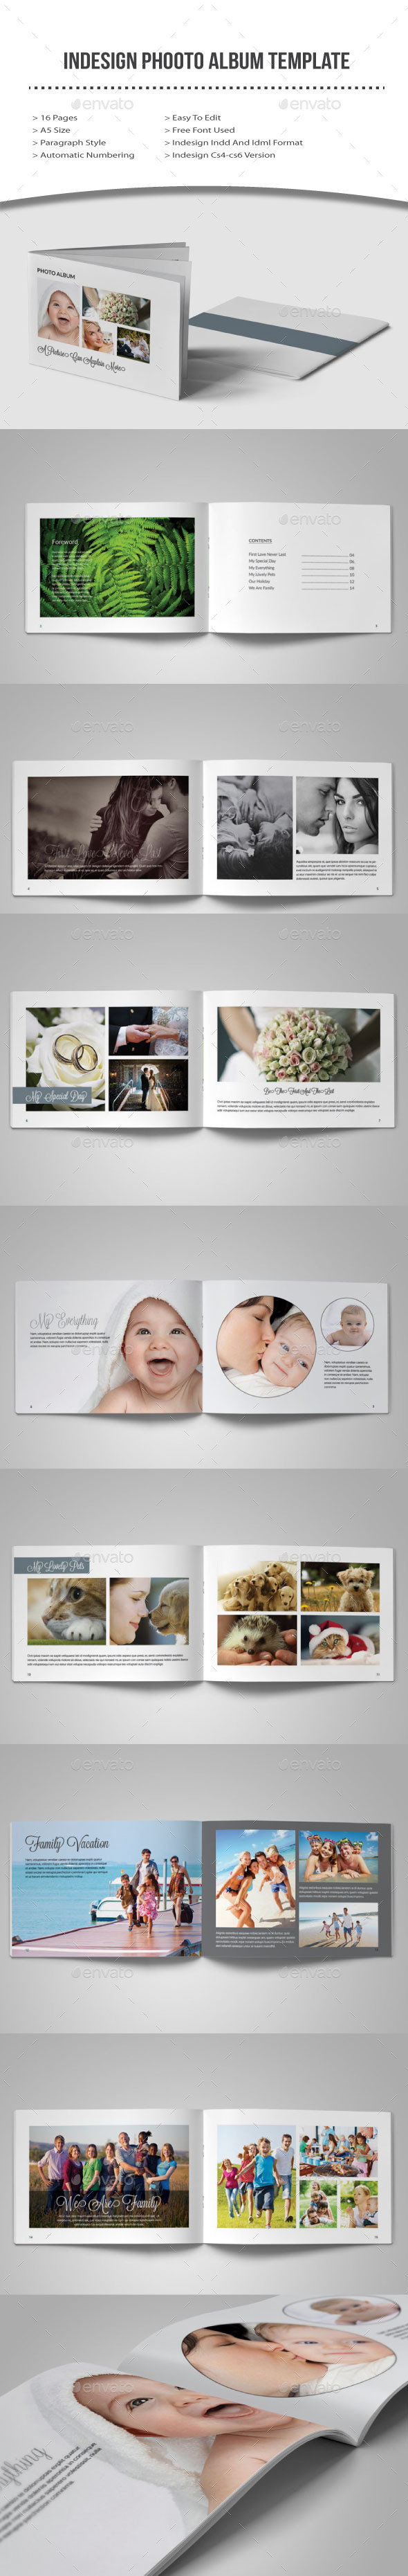 GraphicRiver Indesign Photo Album Template 10400415